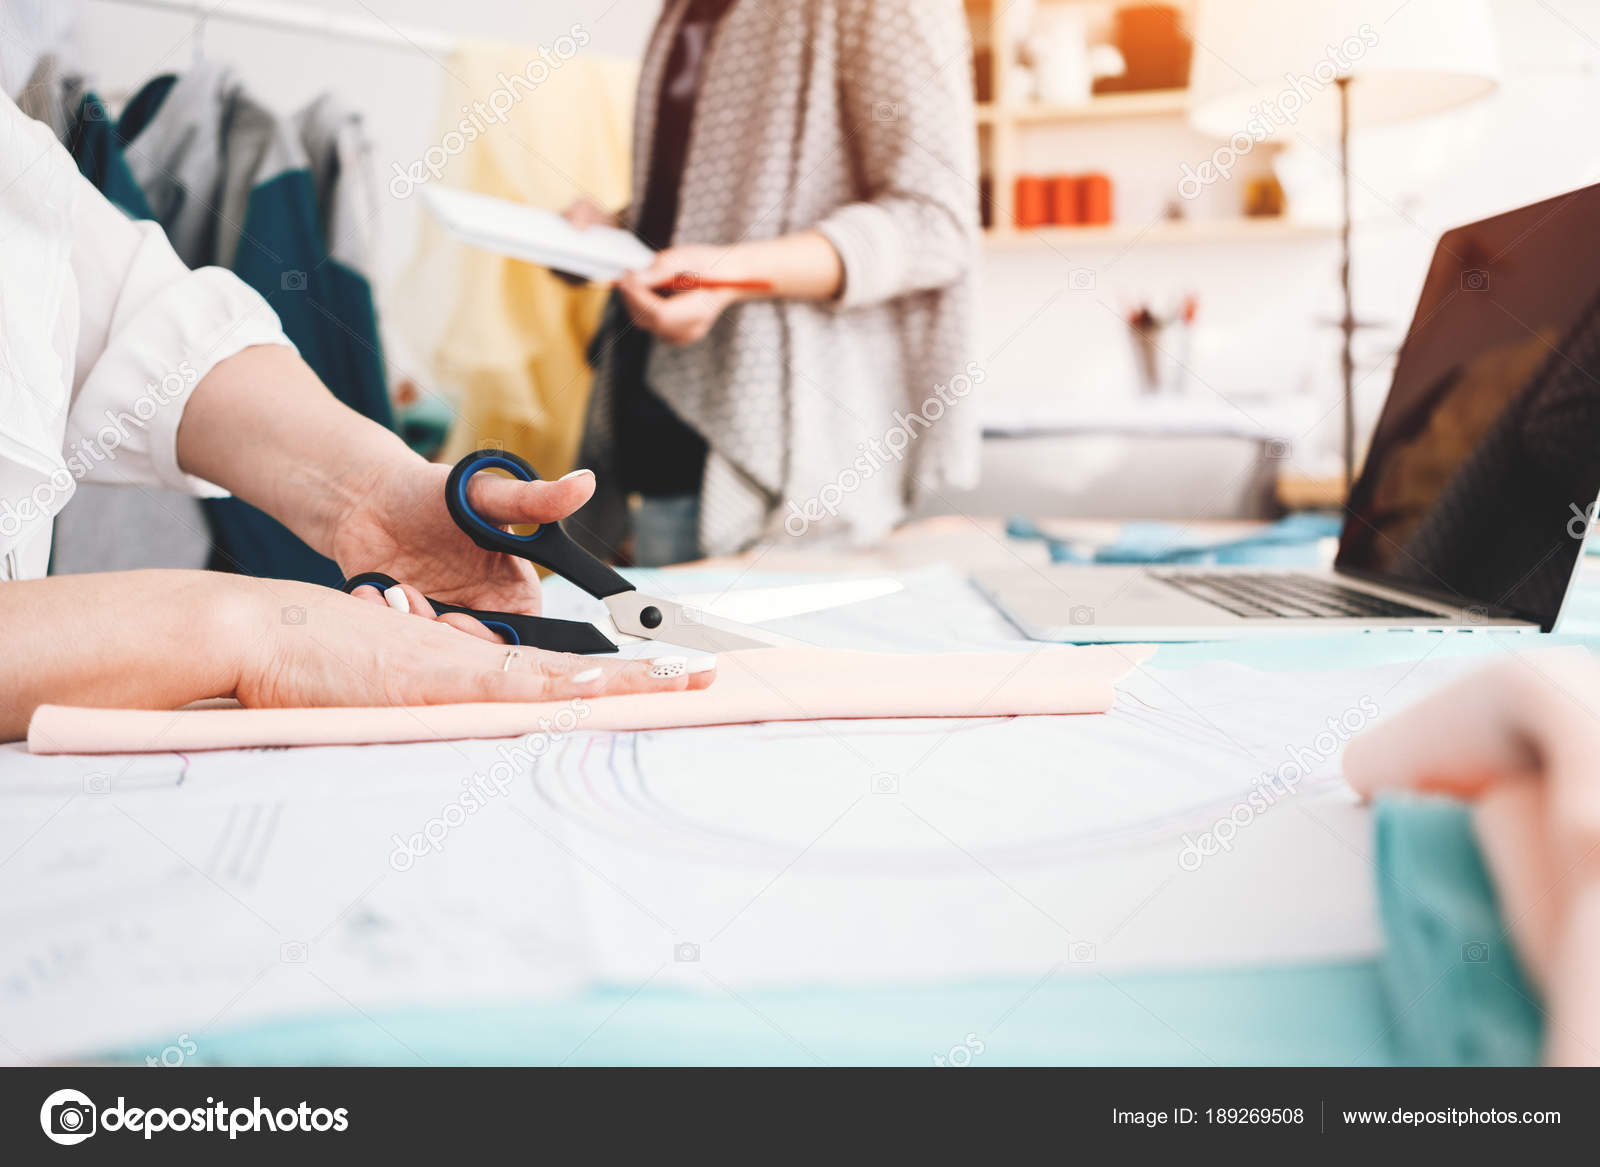 Two young clothing designer working fabric laptop sewing design